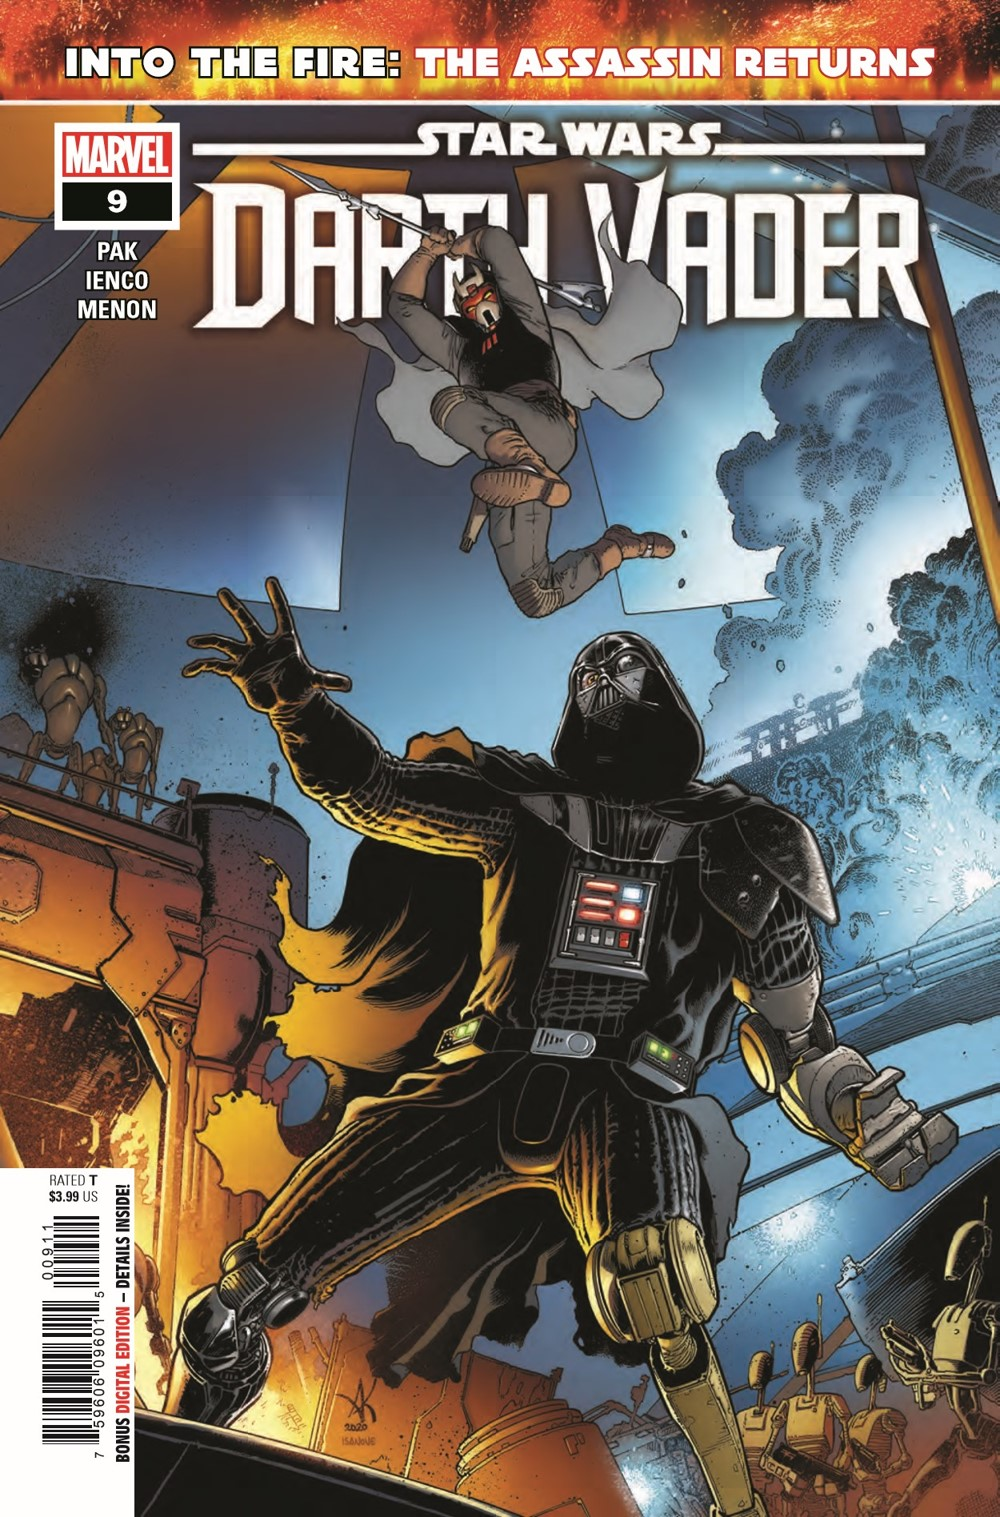 STWVADER2020009_Preview-1 ComicList Previews: STAR WARS DARTH VADER #9